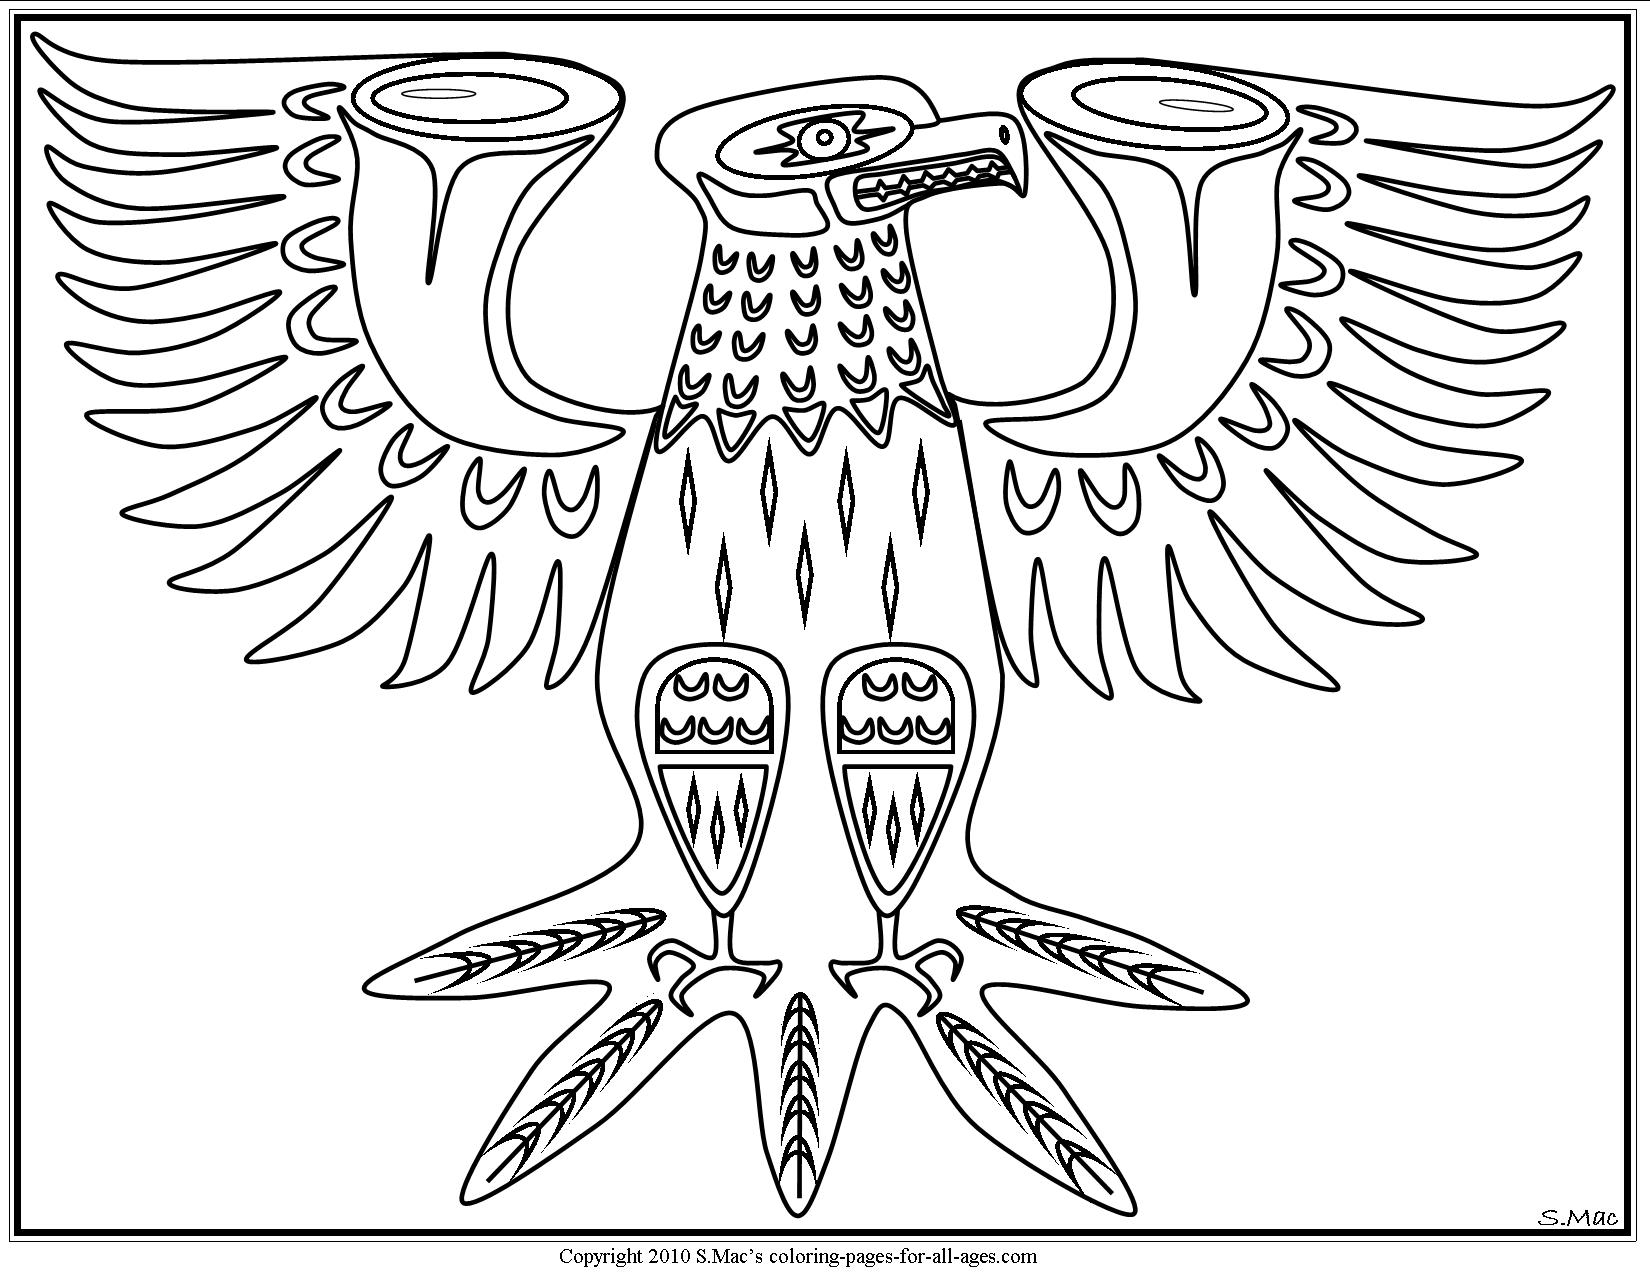 1650x1275 Focus American Revolution Coloring Pages Pdf Native